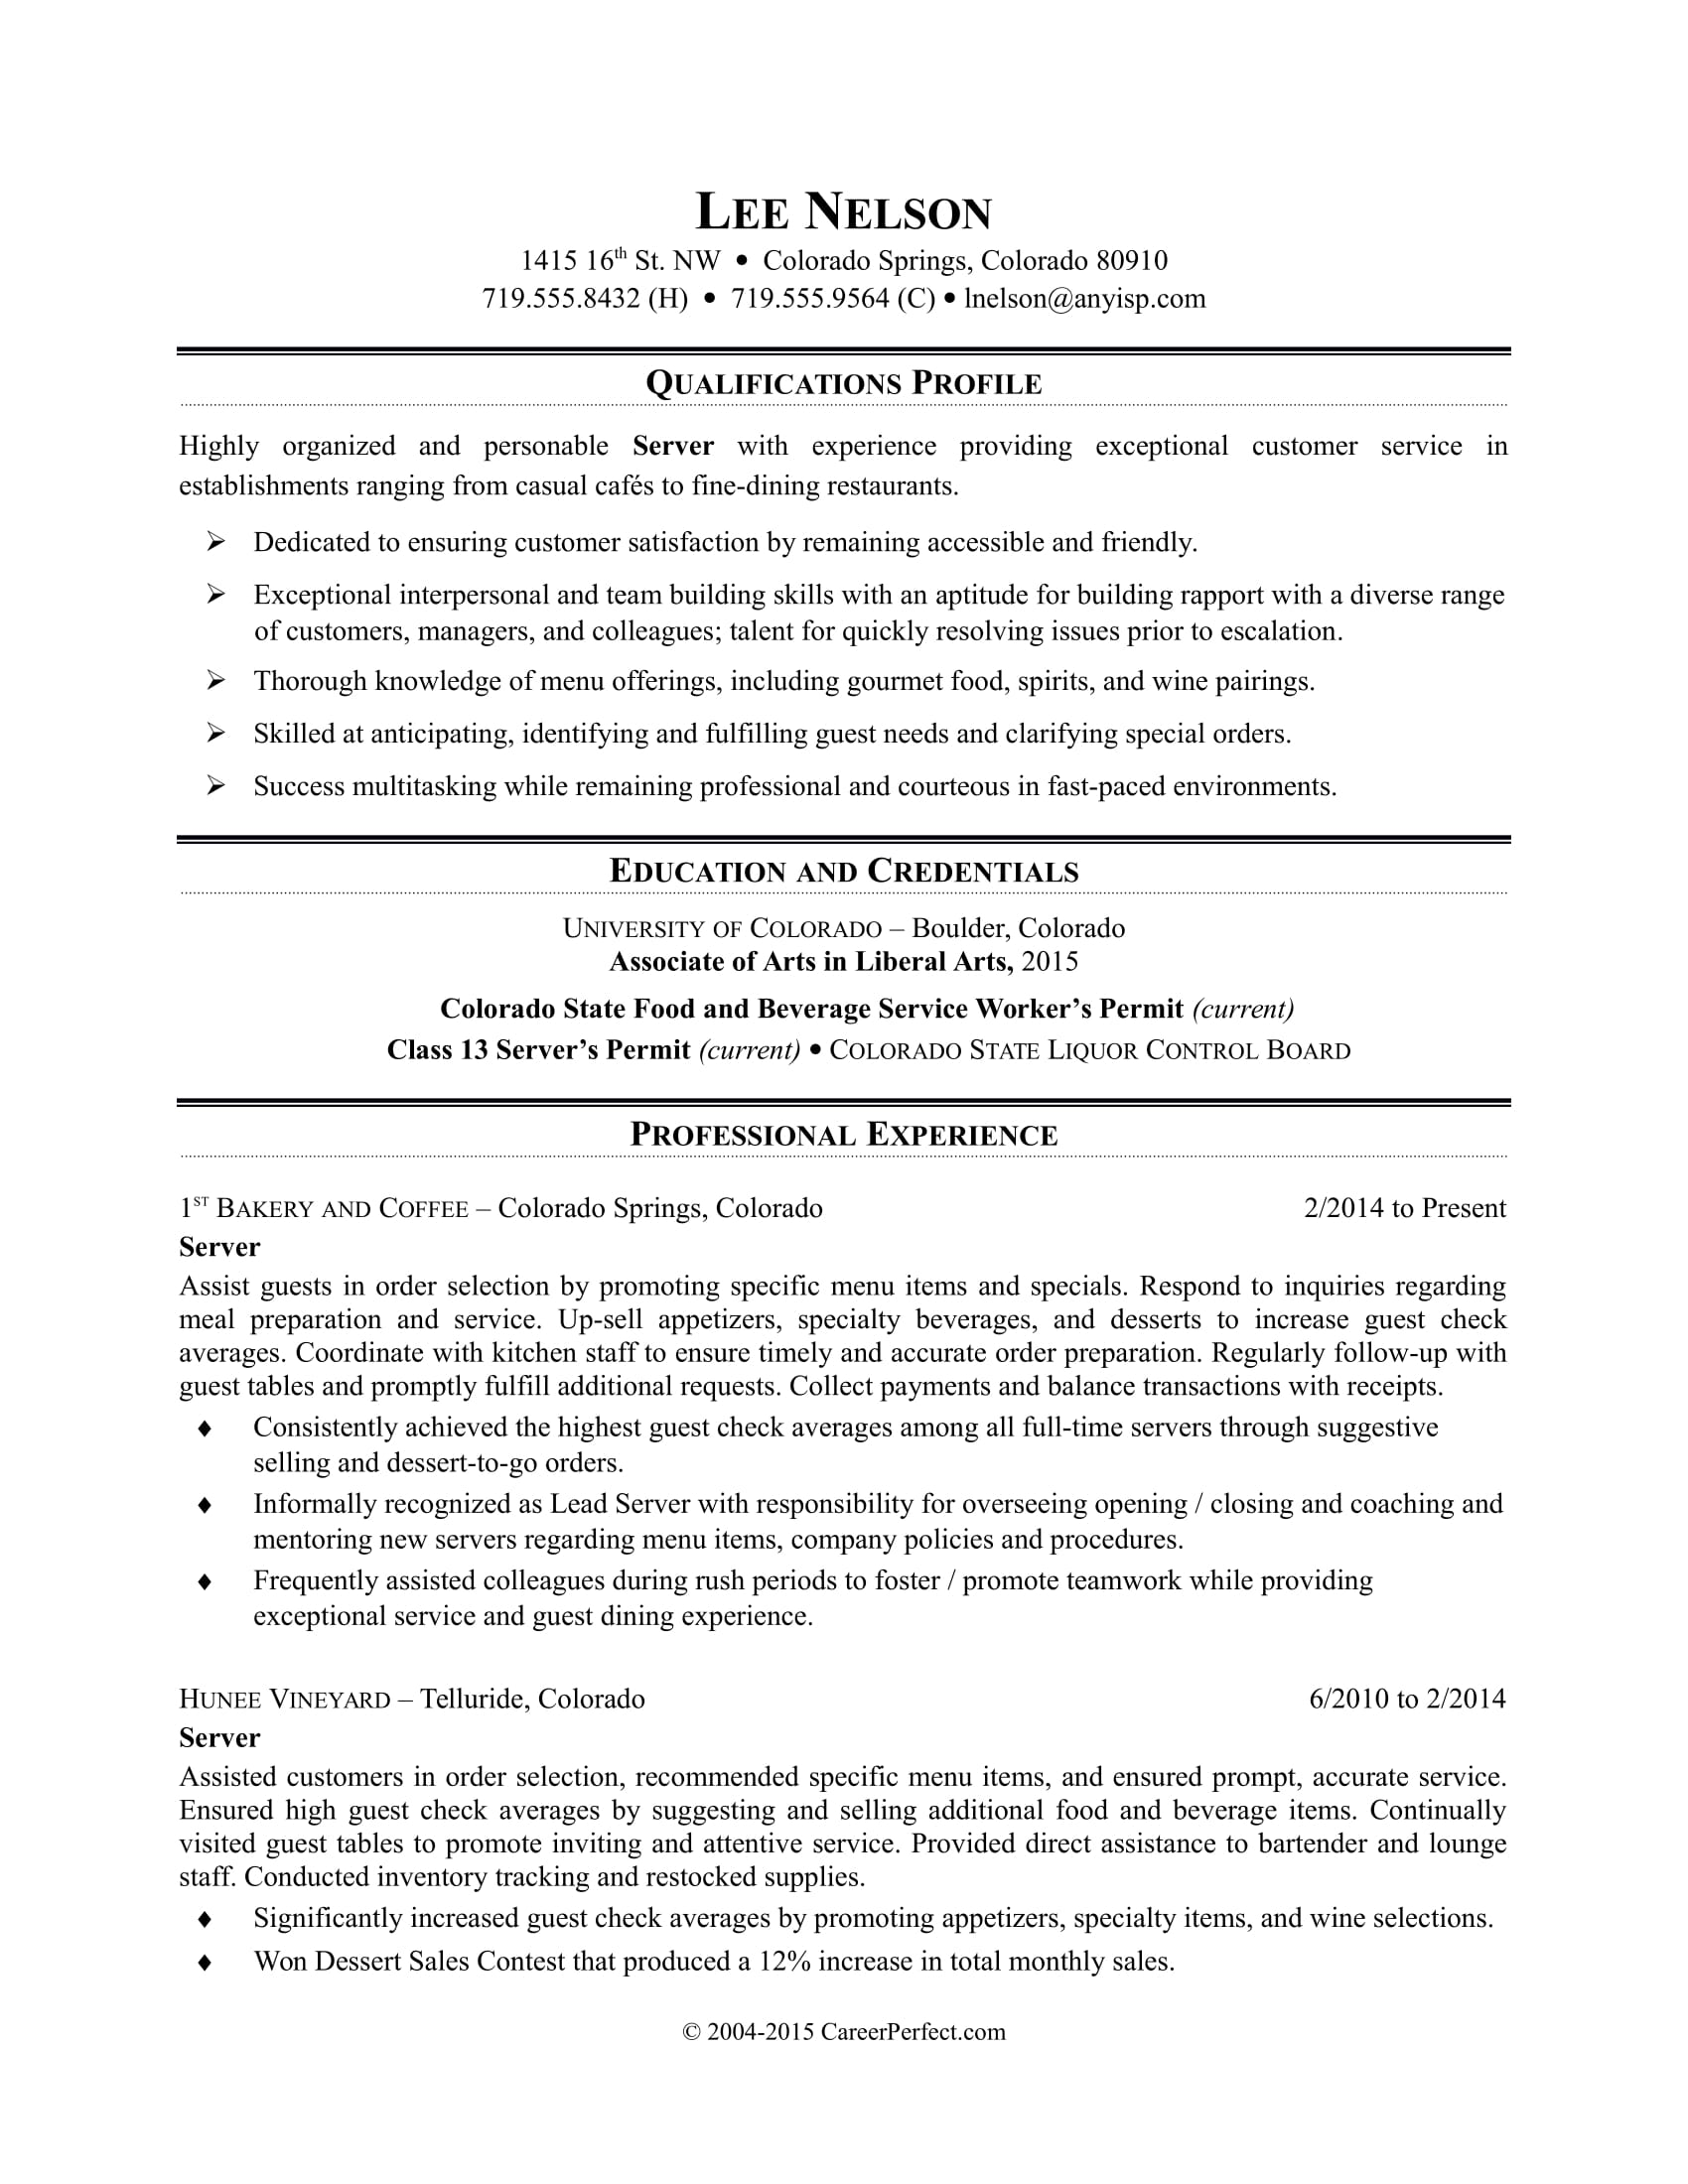 Delightful Sample Resume For A Restaurant Server For Resume For Restaurant Server